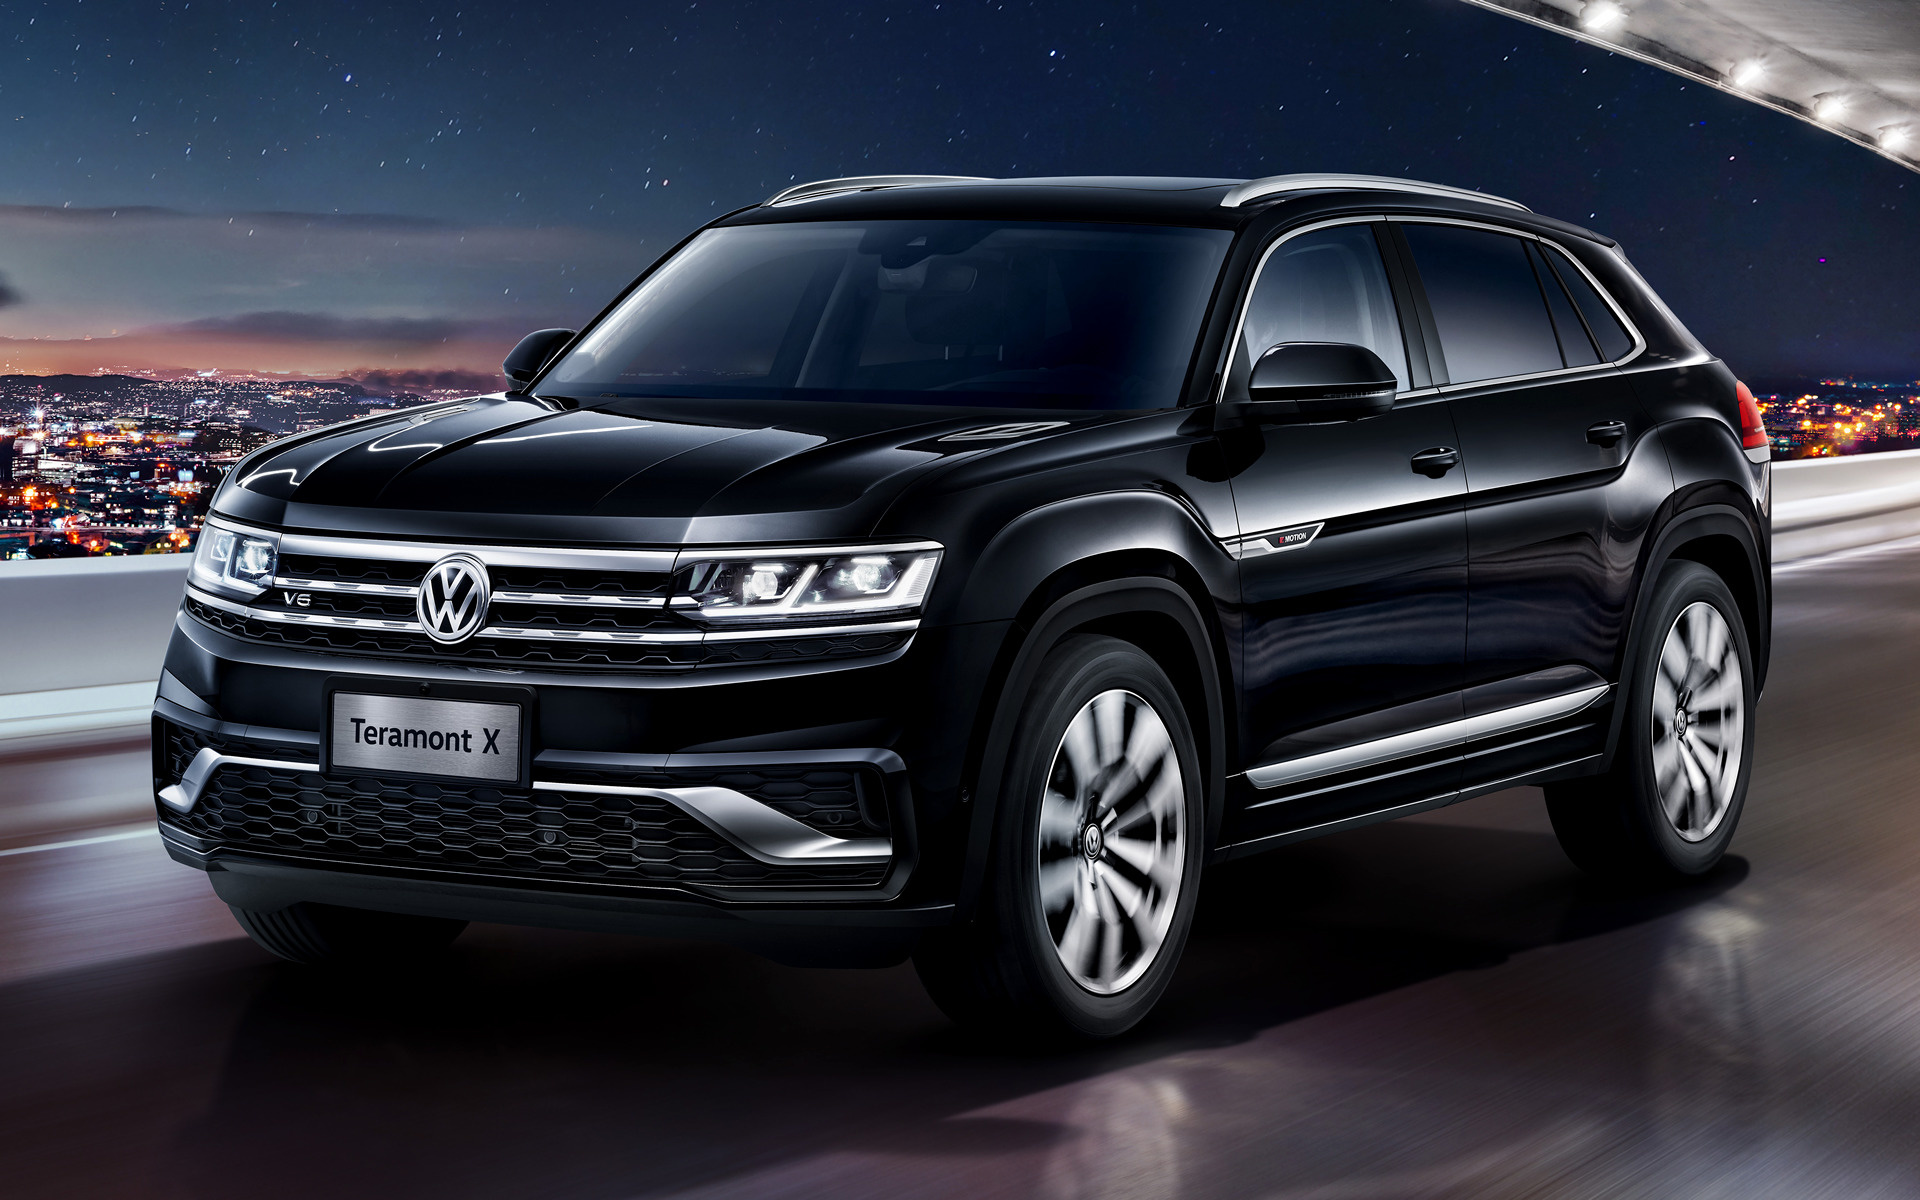 2019 Volkswagen Teramont X (CN) - Wallpapers and HD Images ...